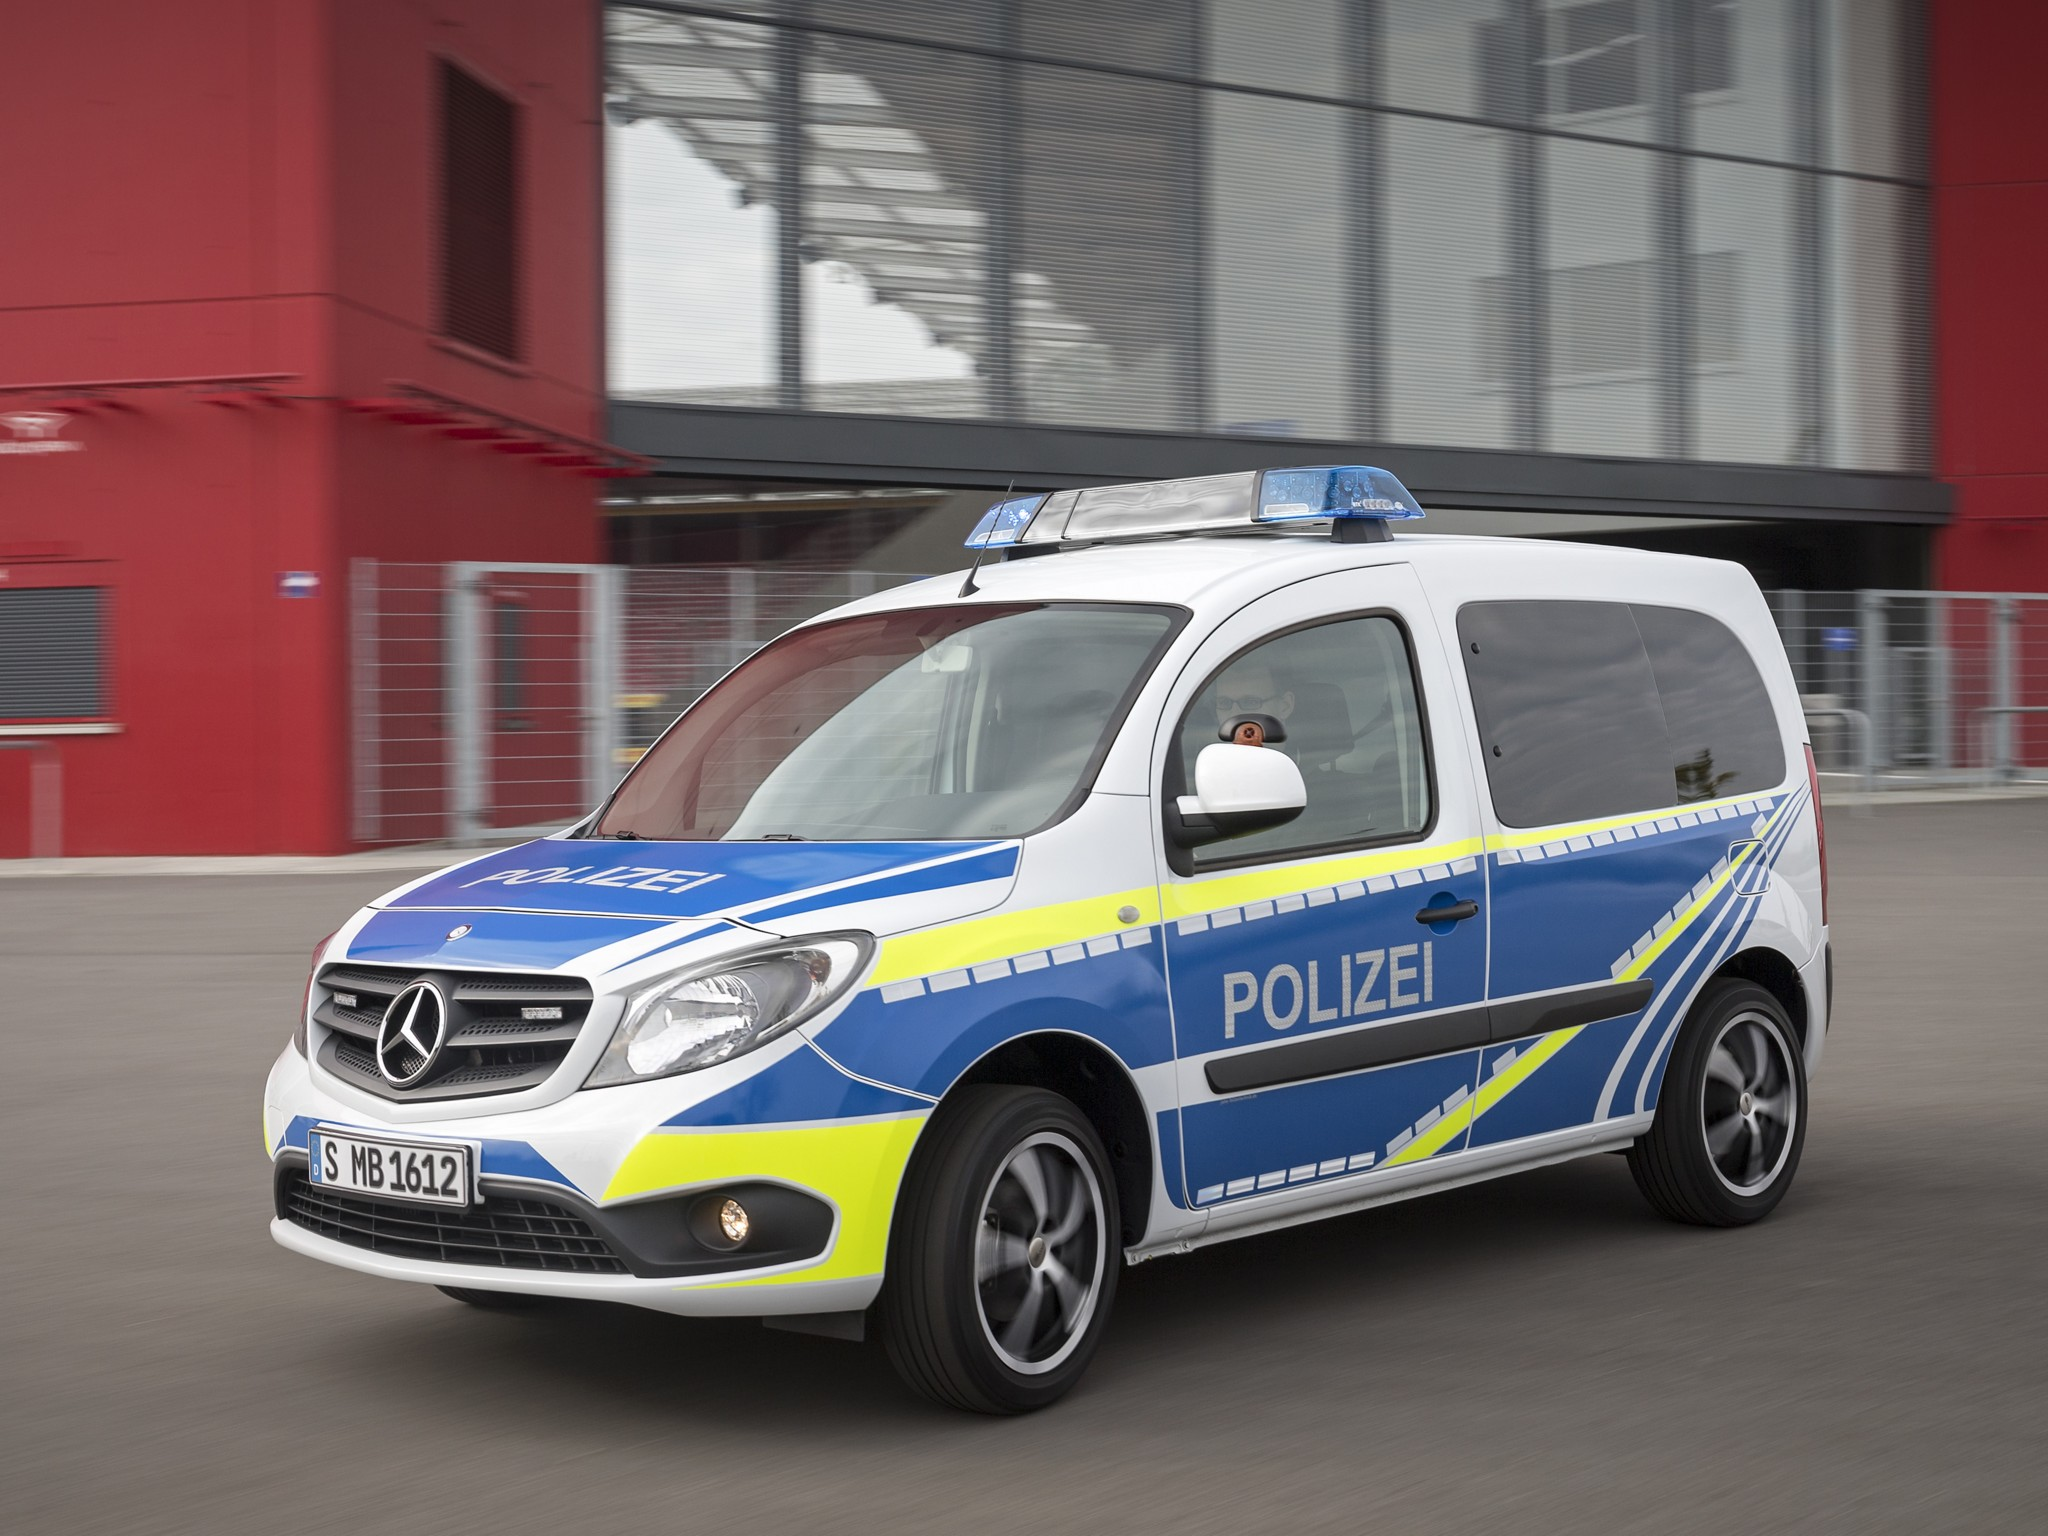 2013 mercedes benz citan polizei emergency police for Mercedes benz emergency